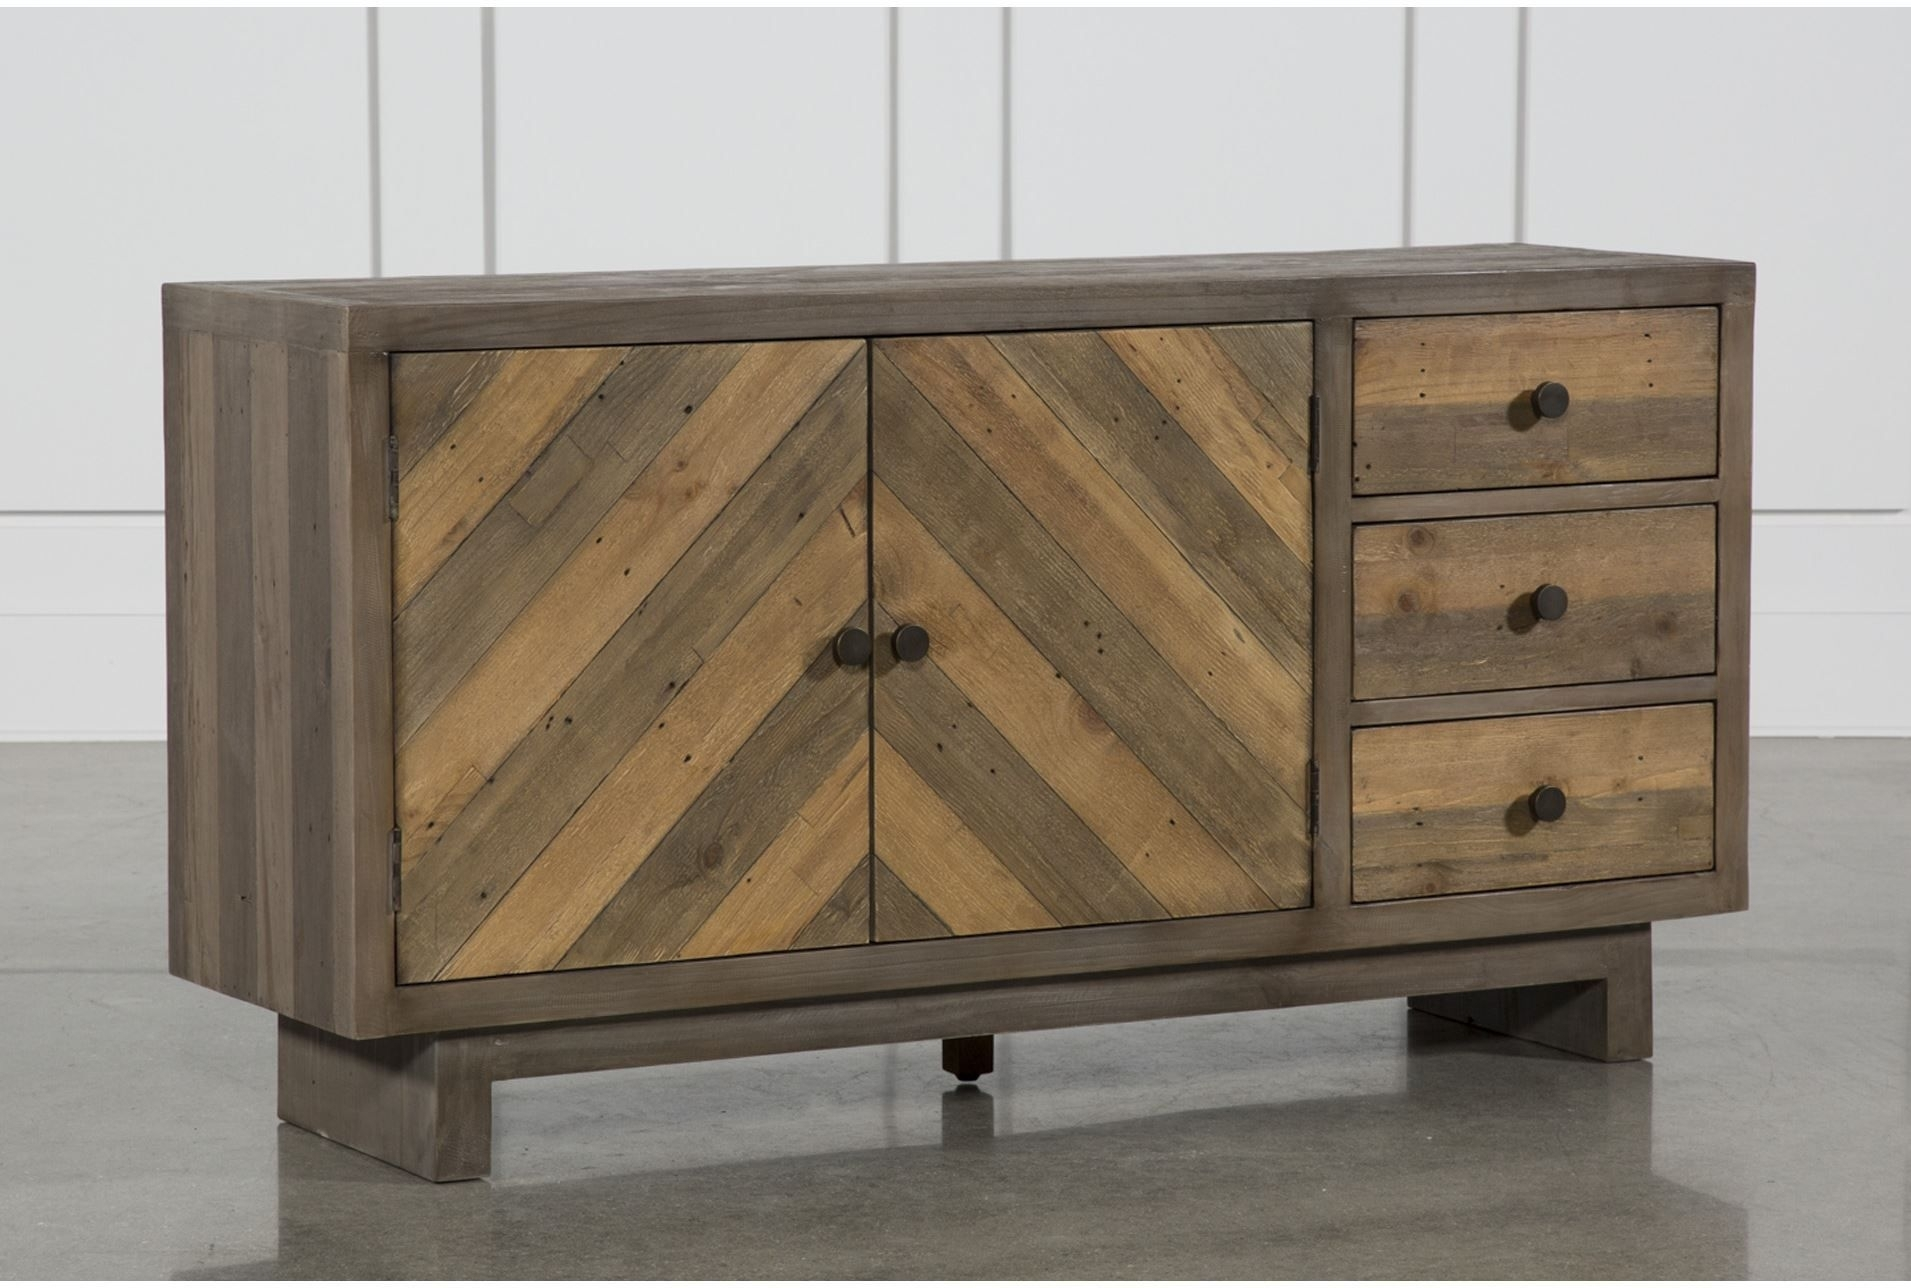 Otb Aged Pine 3 Drawer/2 Door Sideboard, Brown | Pinterest | Products In Most Up To Date Oil Pale Finish 4 Door Sideboards (View 13 of 20)